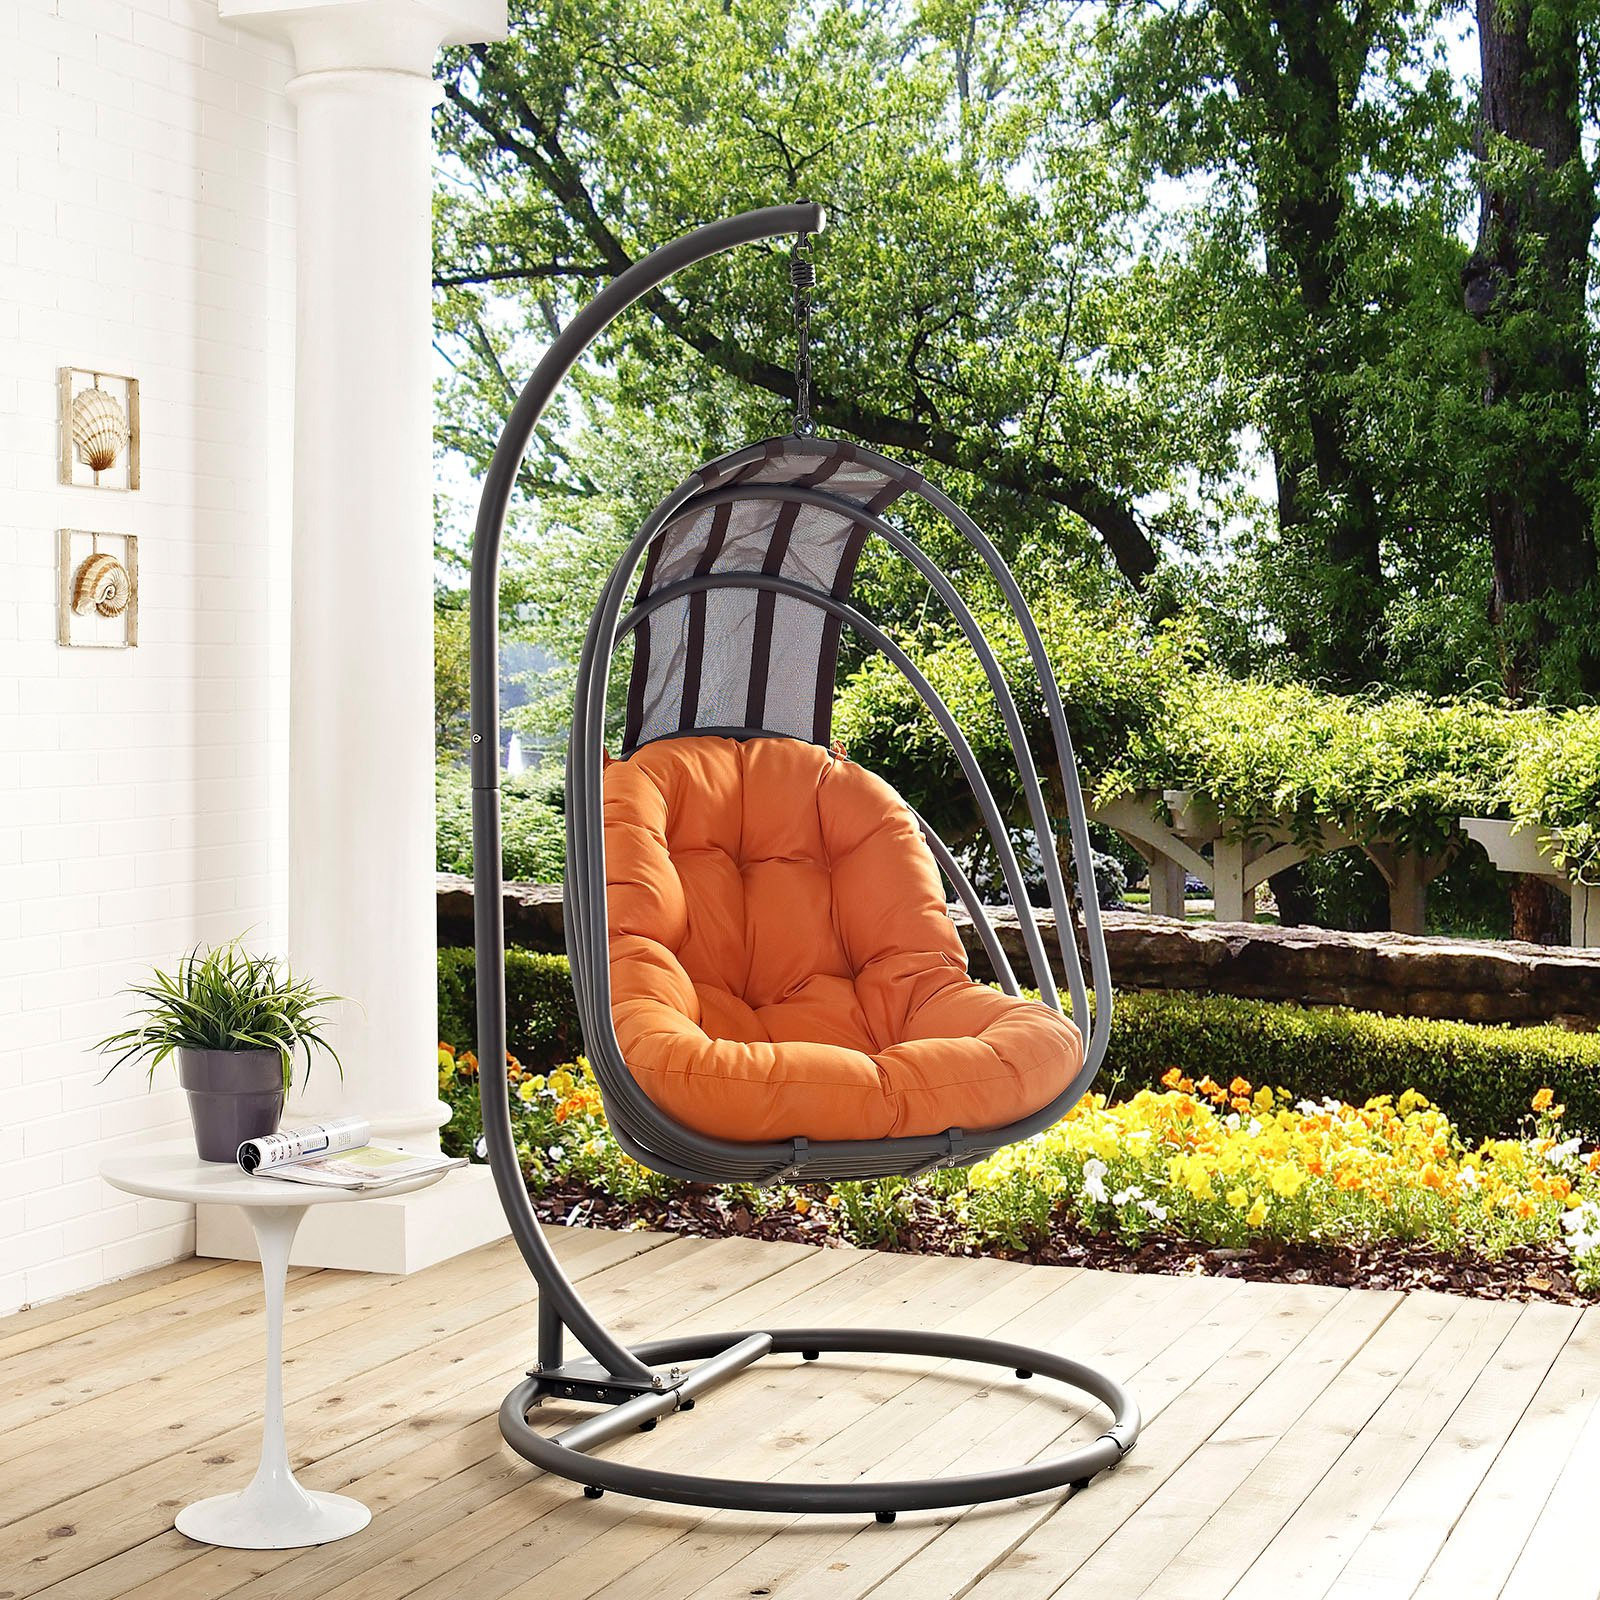 Modway Whisk Outdoor Patio Swing Chair With Stand, Multiple Colors Available